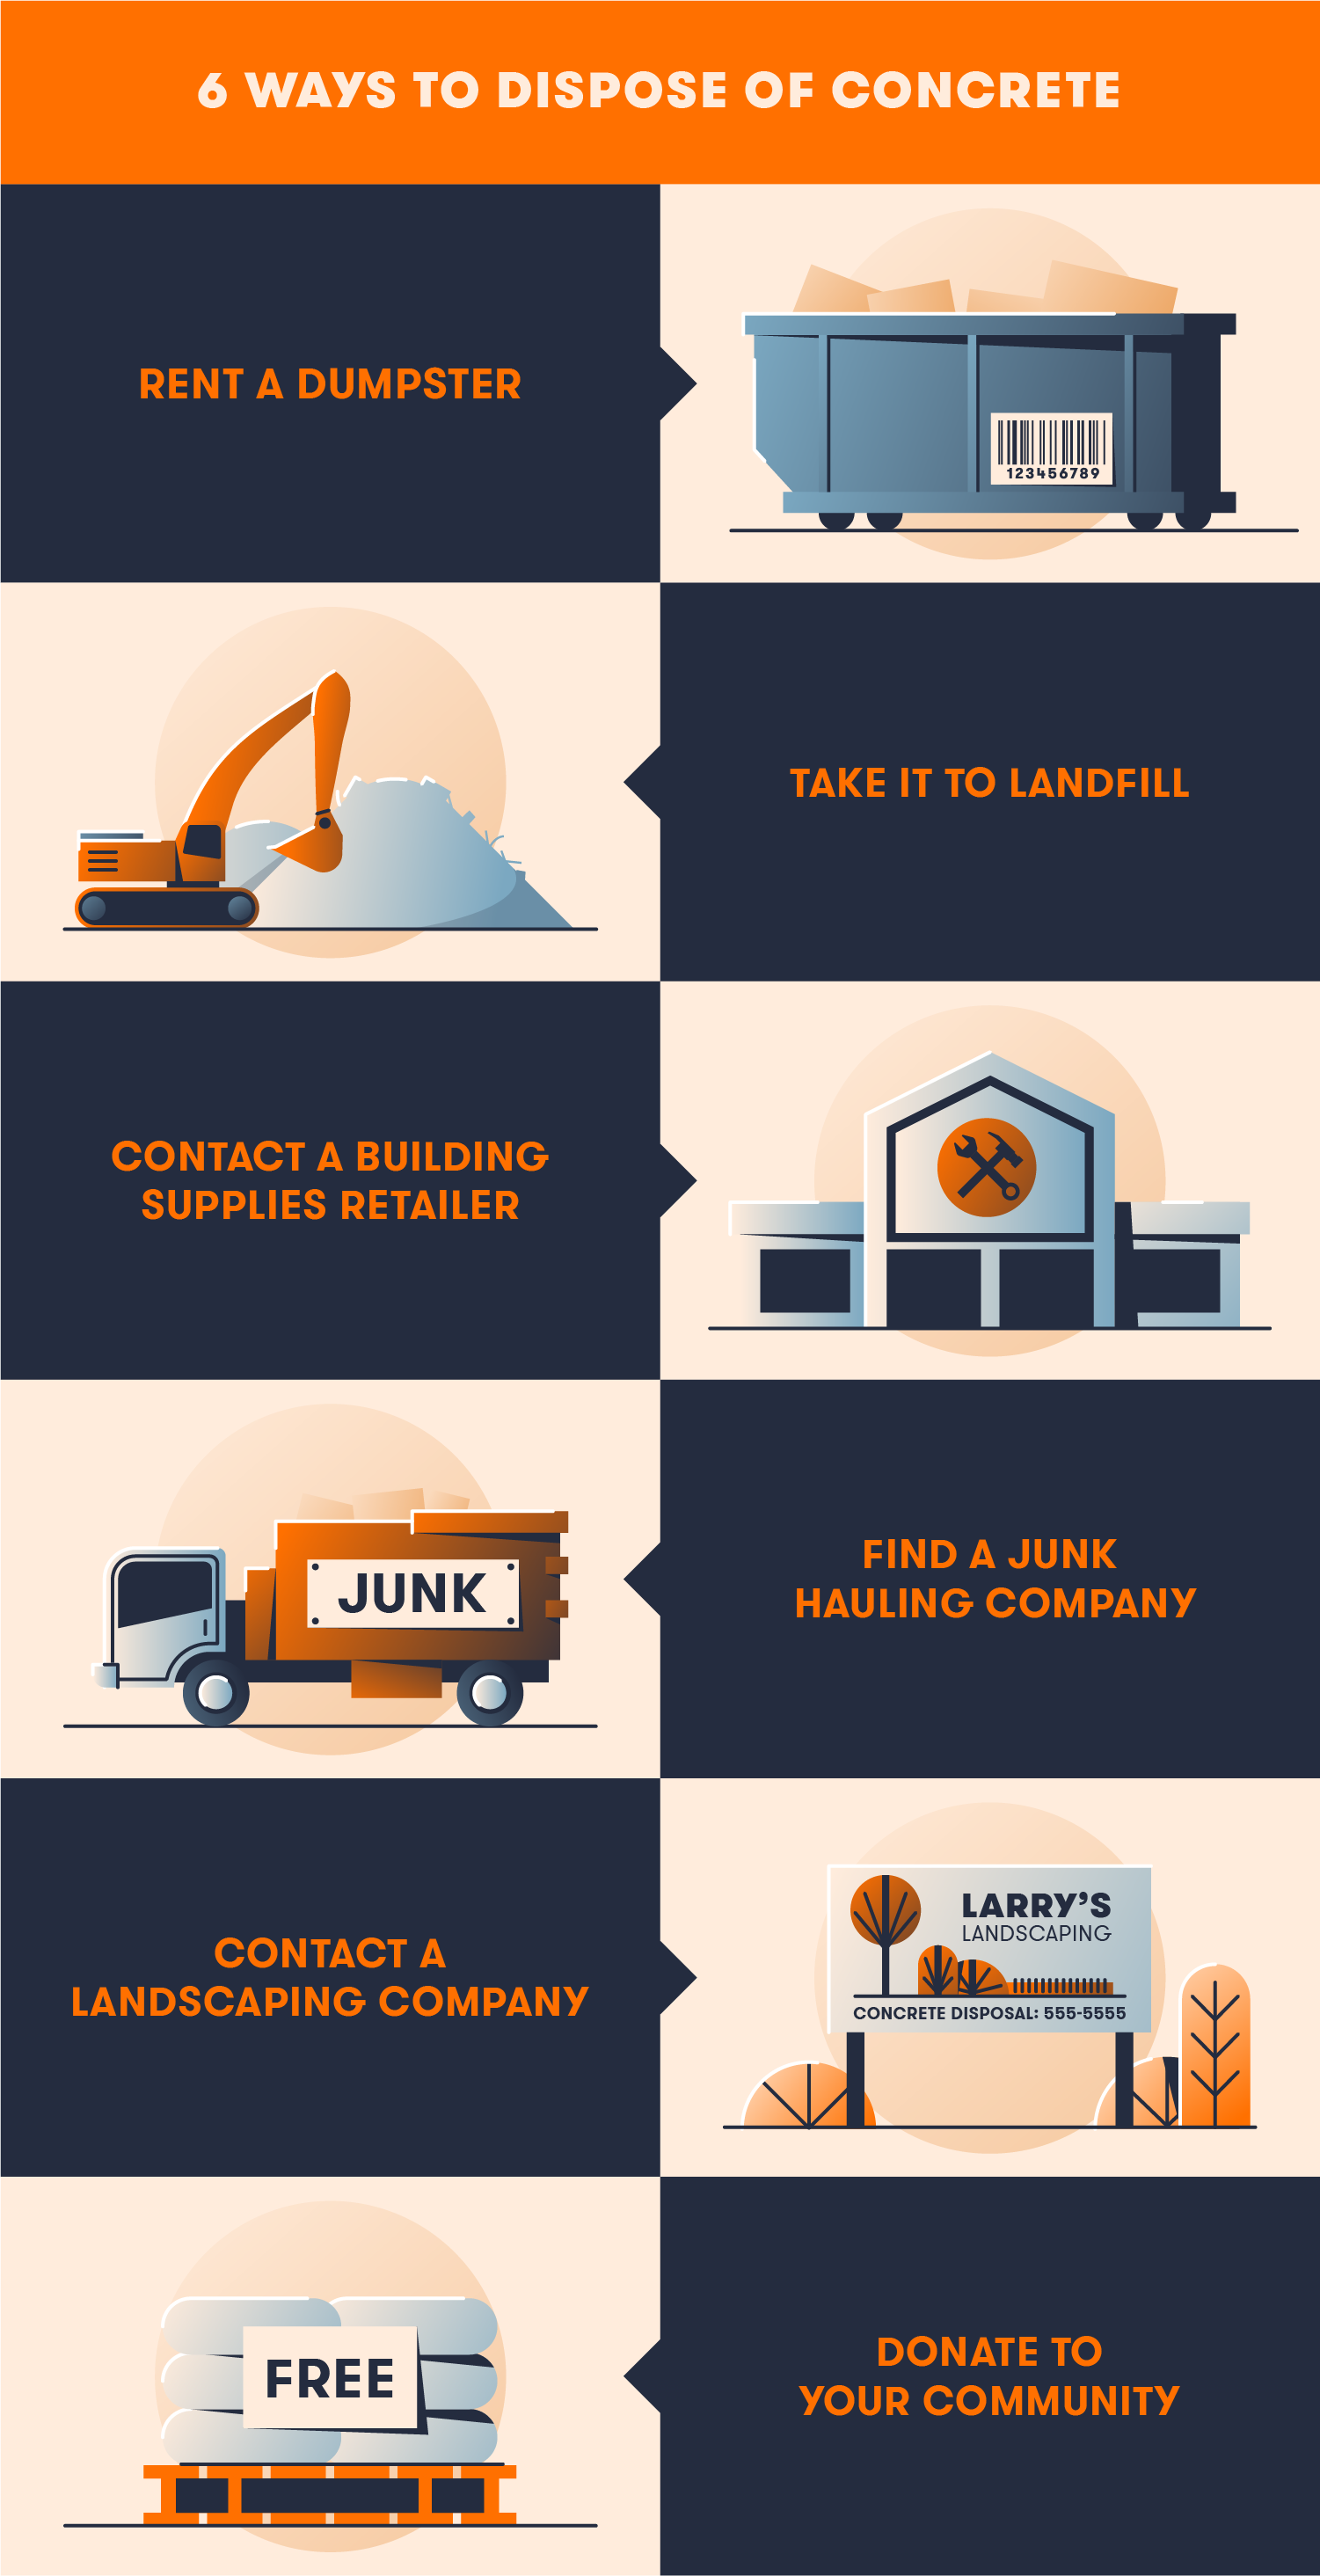 6 different ways to dispose of concrete from construction